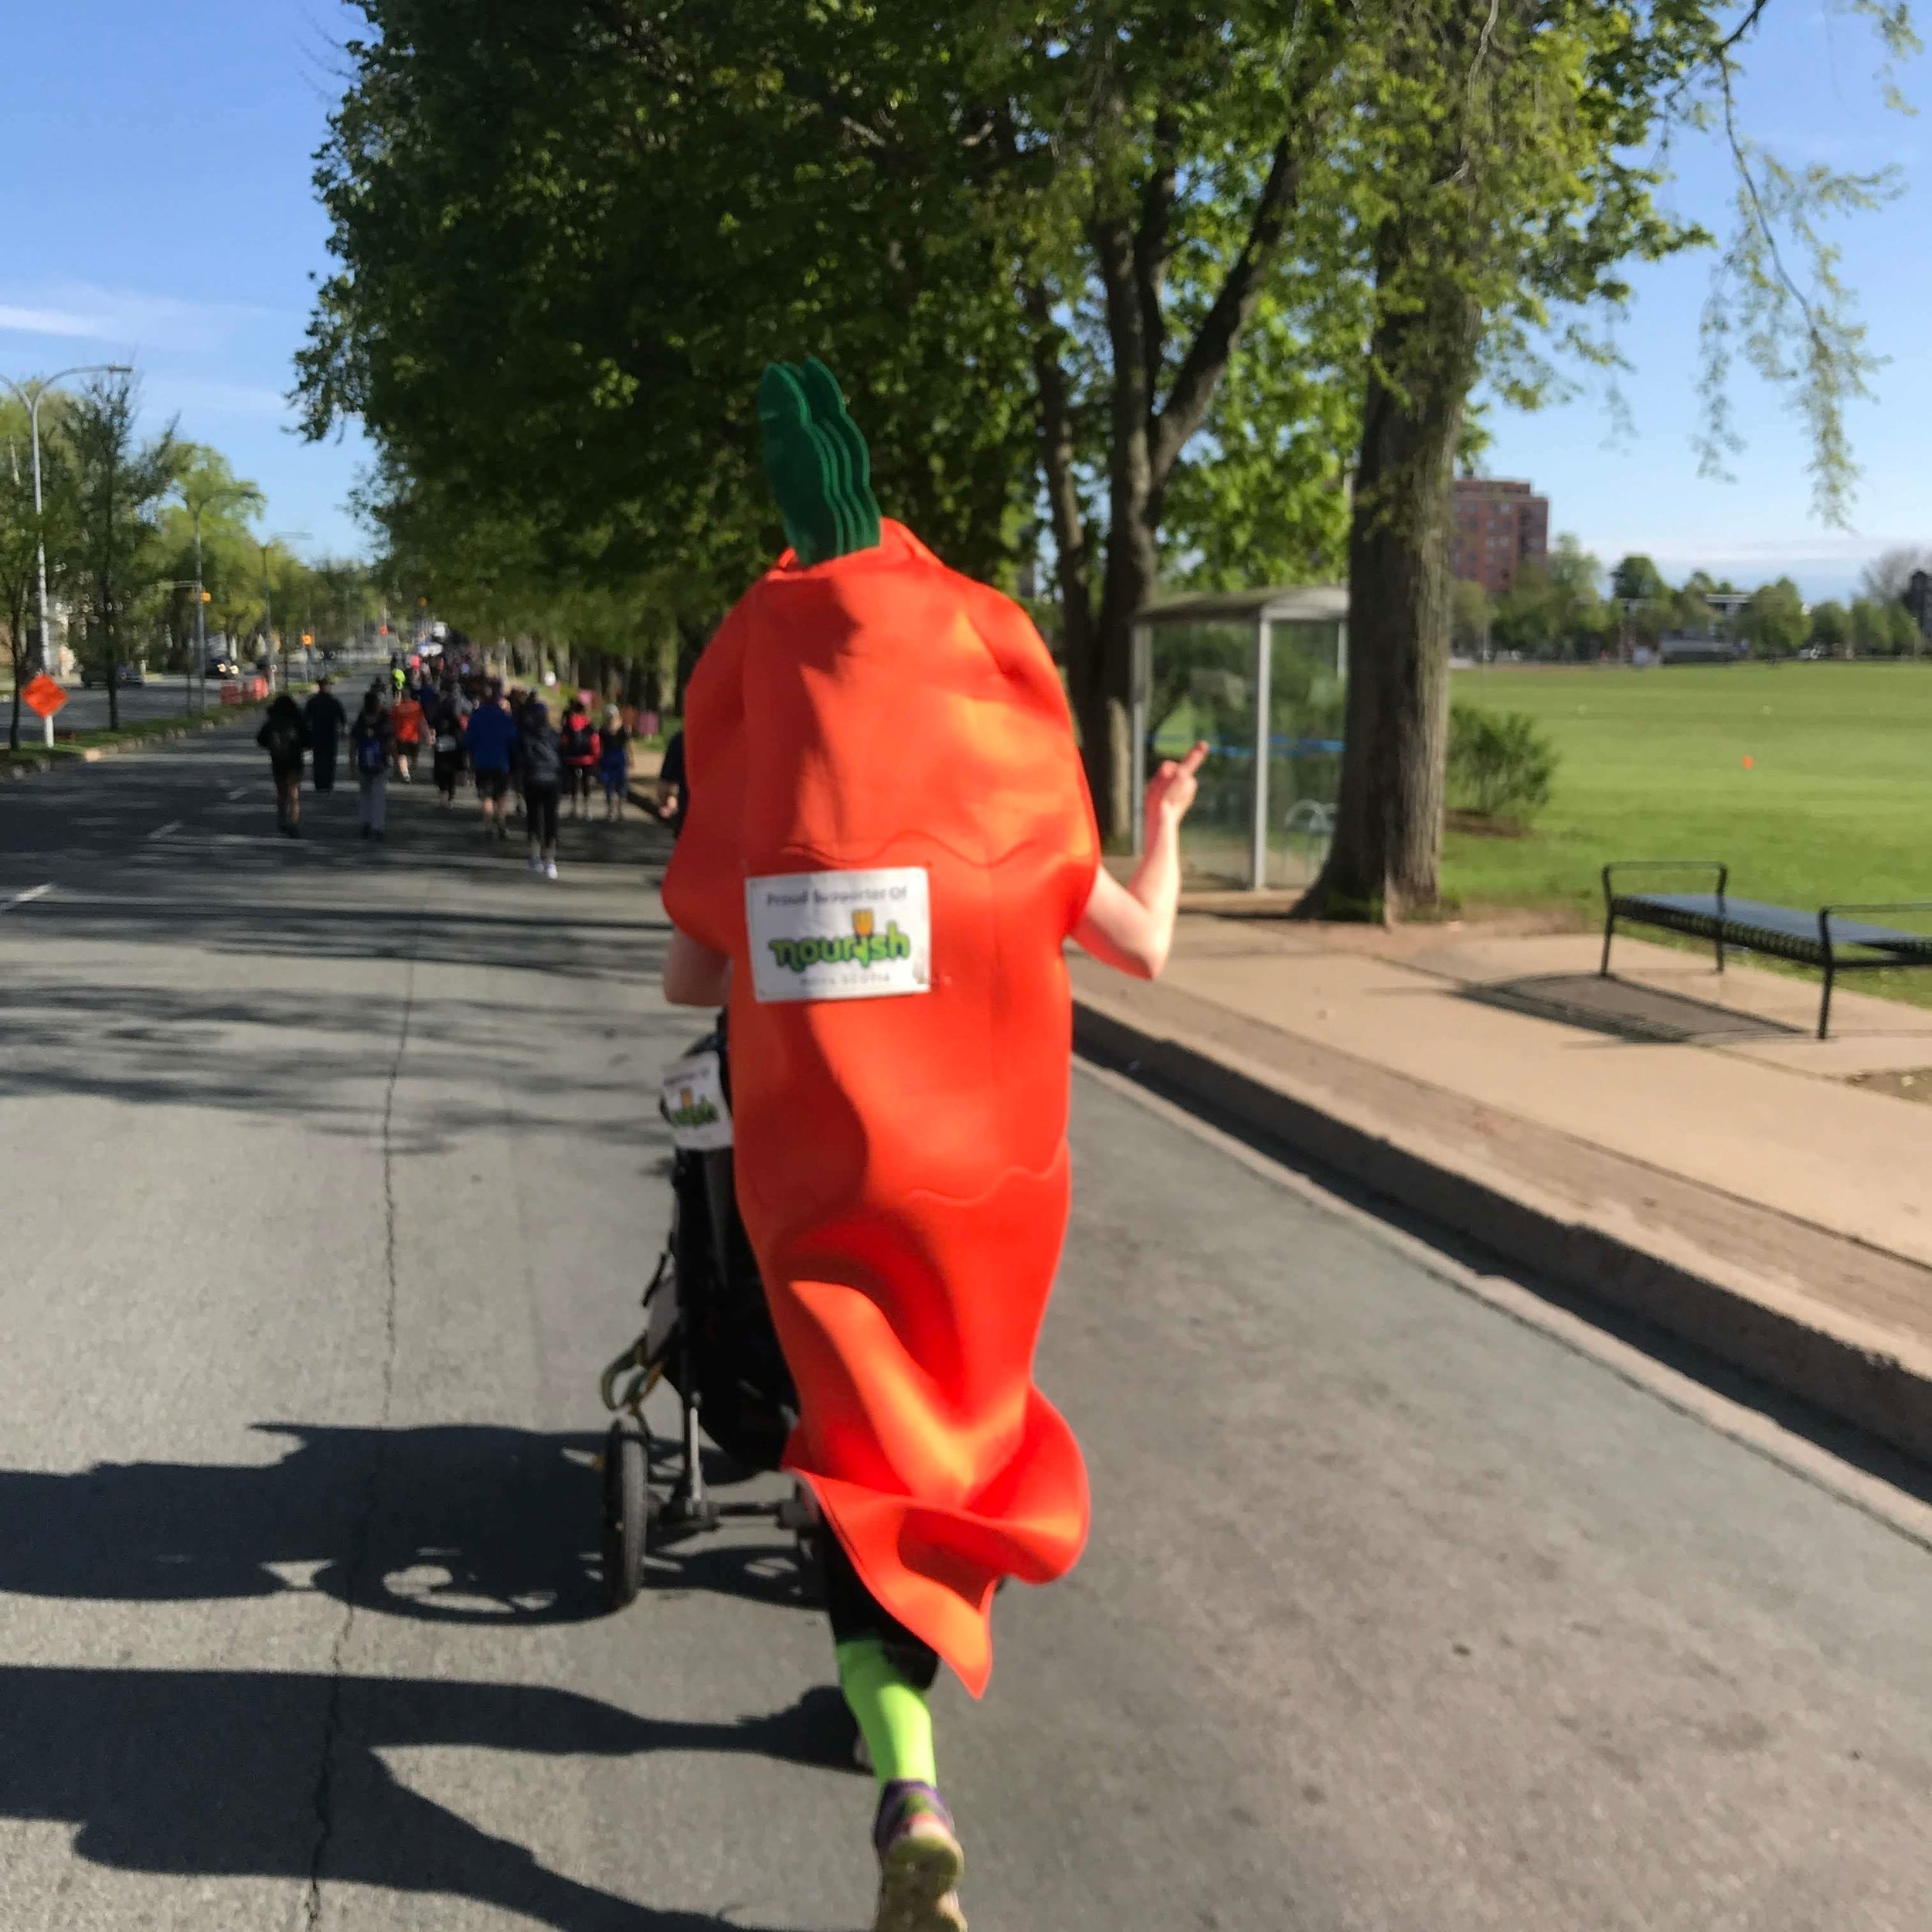 Our mascot, Crunchy the Carrot giving their all!